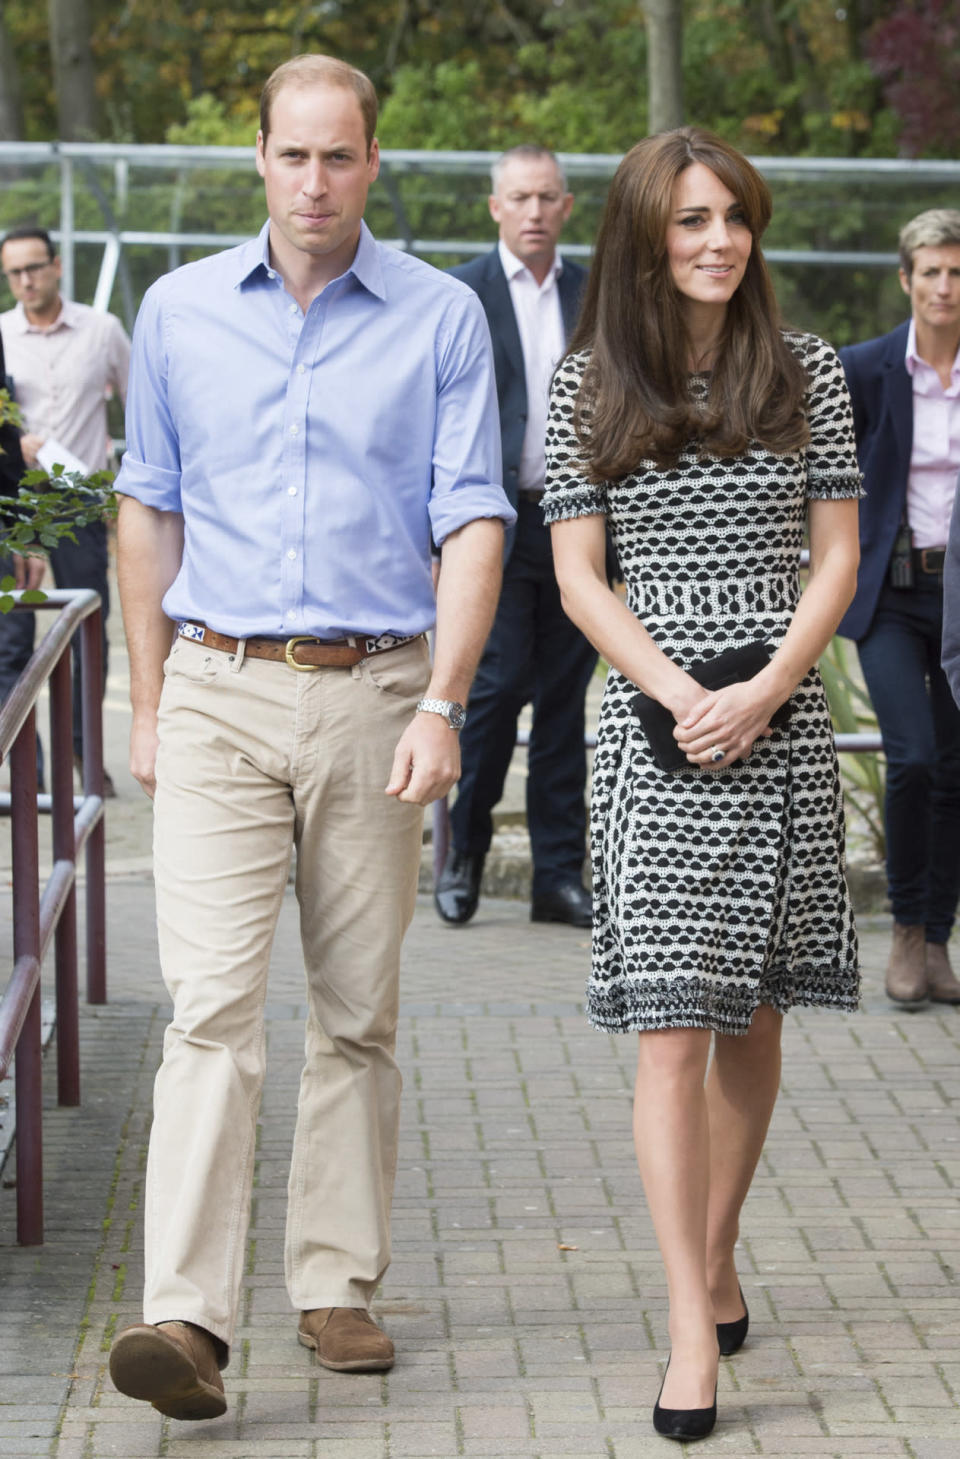 <p>The Duchess chose a monochrome Tory Burch dress for a mental health charity event. She accessorised with Stuart Weitzman heels and one of her favourite bags, the Mulberry Bayswater clutch. </p><p><i>[Photo: PA]</i></p>